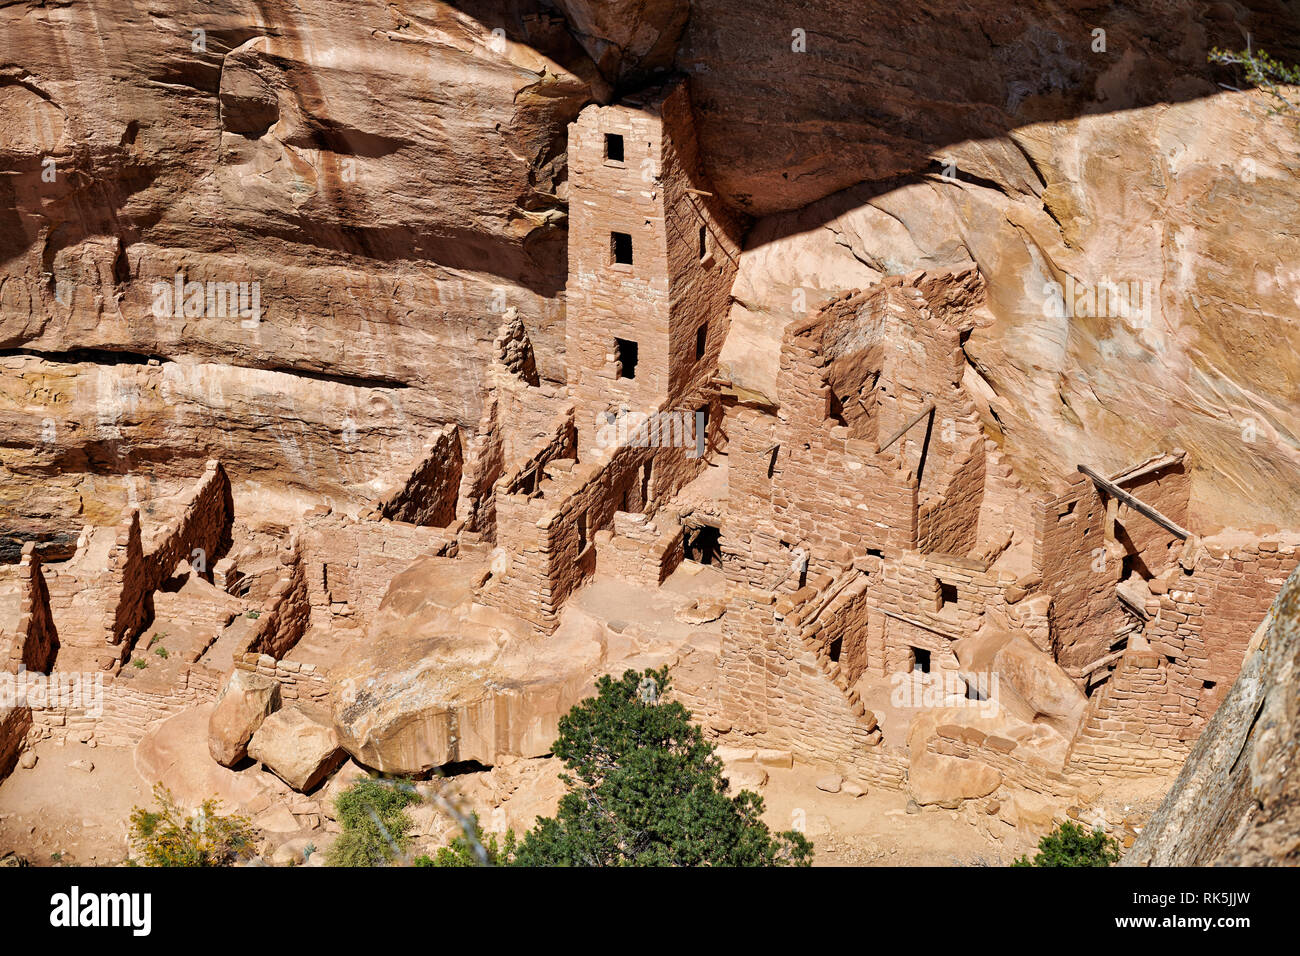 Square Tower House, Cliff dwellings in Mesa-Verde-National Park, UNESCO world heritage site, Colorado, USA, North America - Stock Image